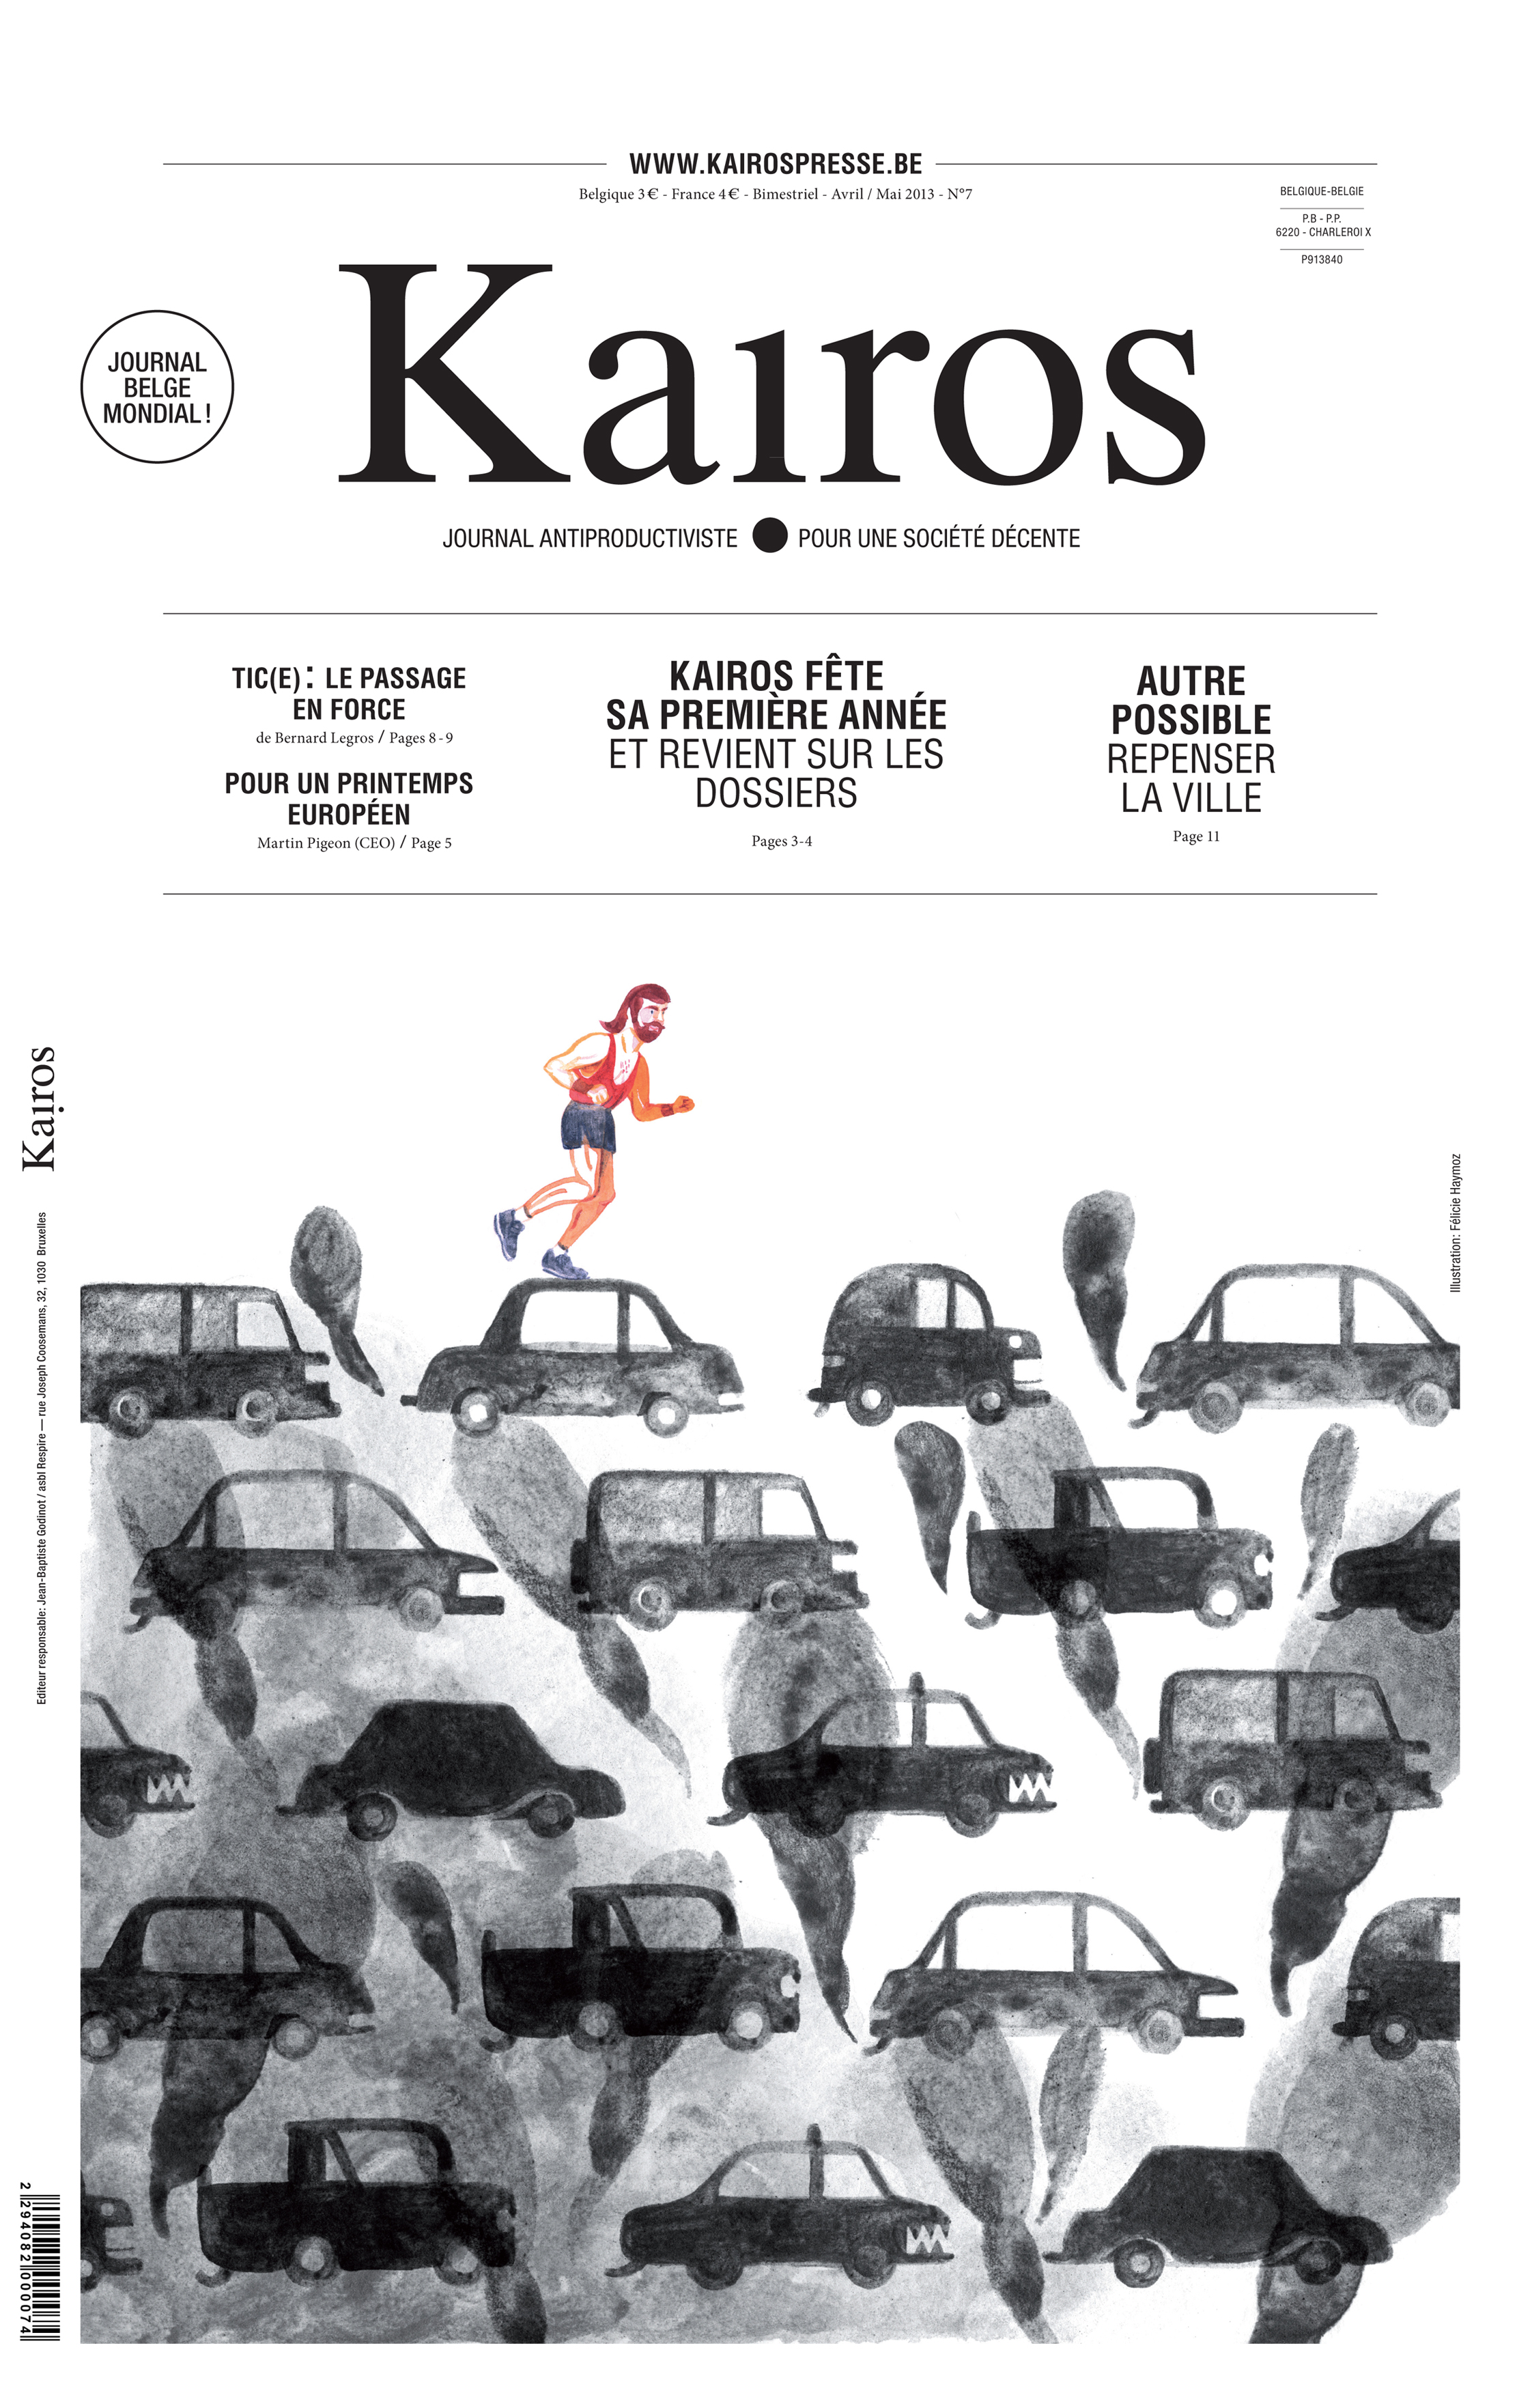 Cover for the Kairos Magazine issue 7 on the theme Rethinking the City